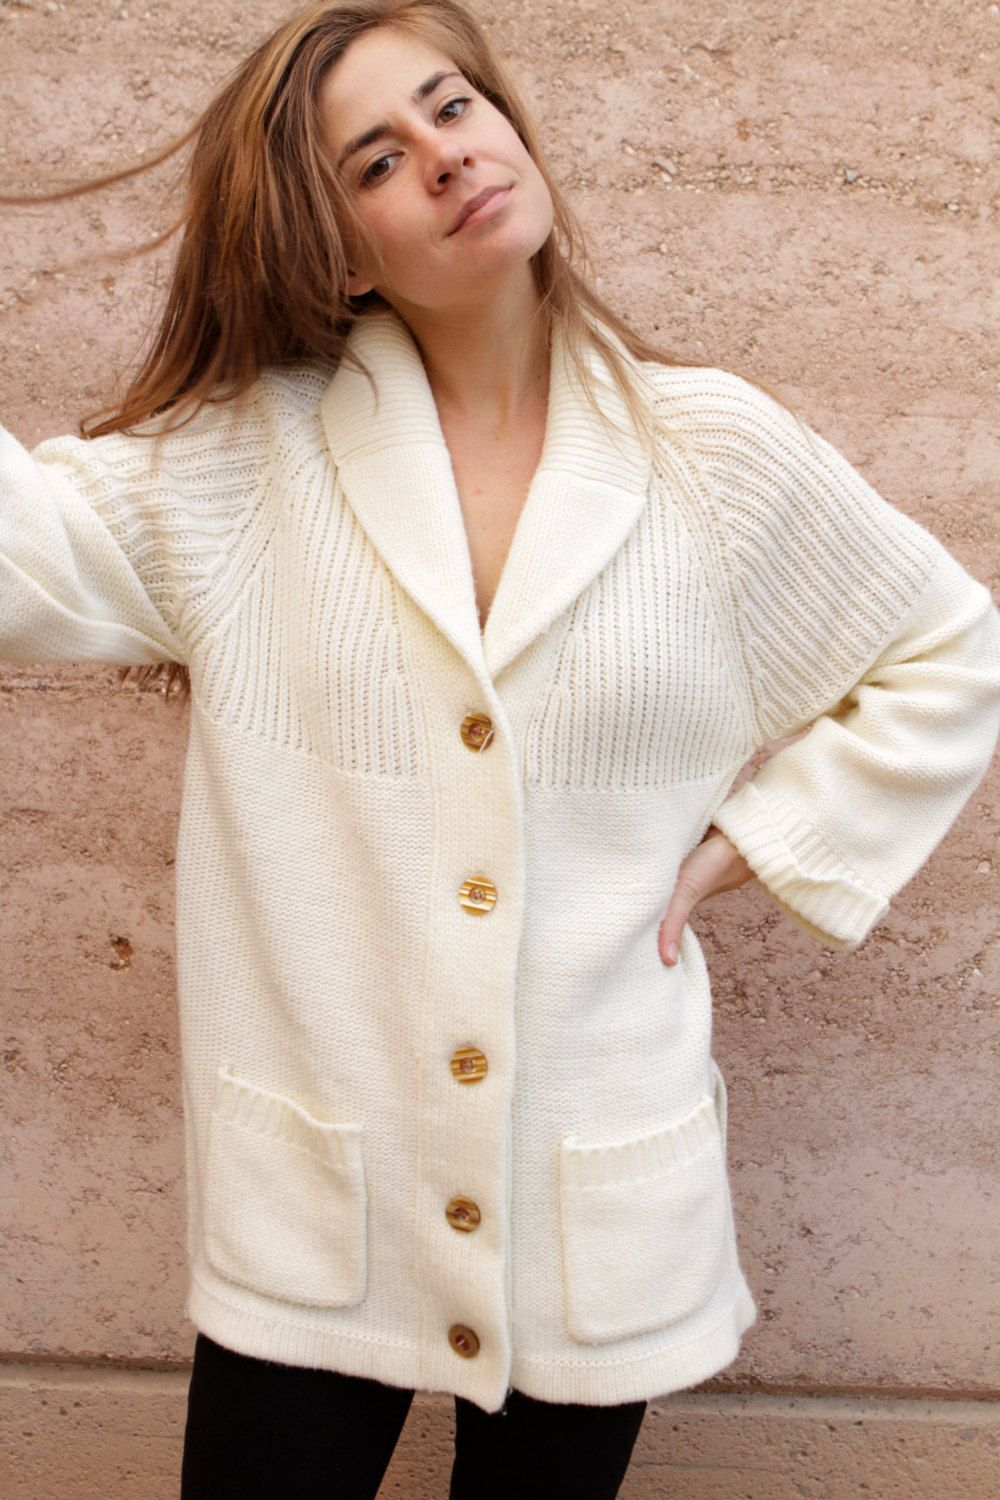 CARDIGAN sweater CREAM long THICK knit cable warm vintage 70s 80s ...